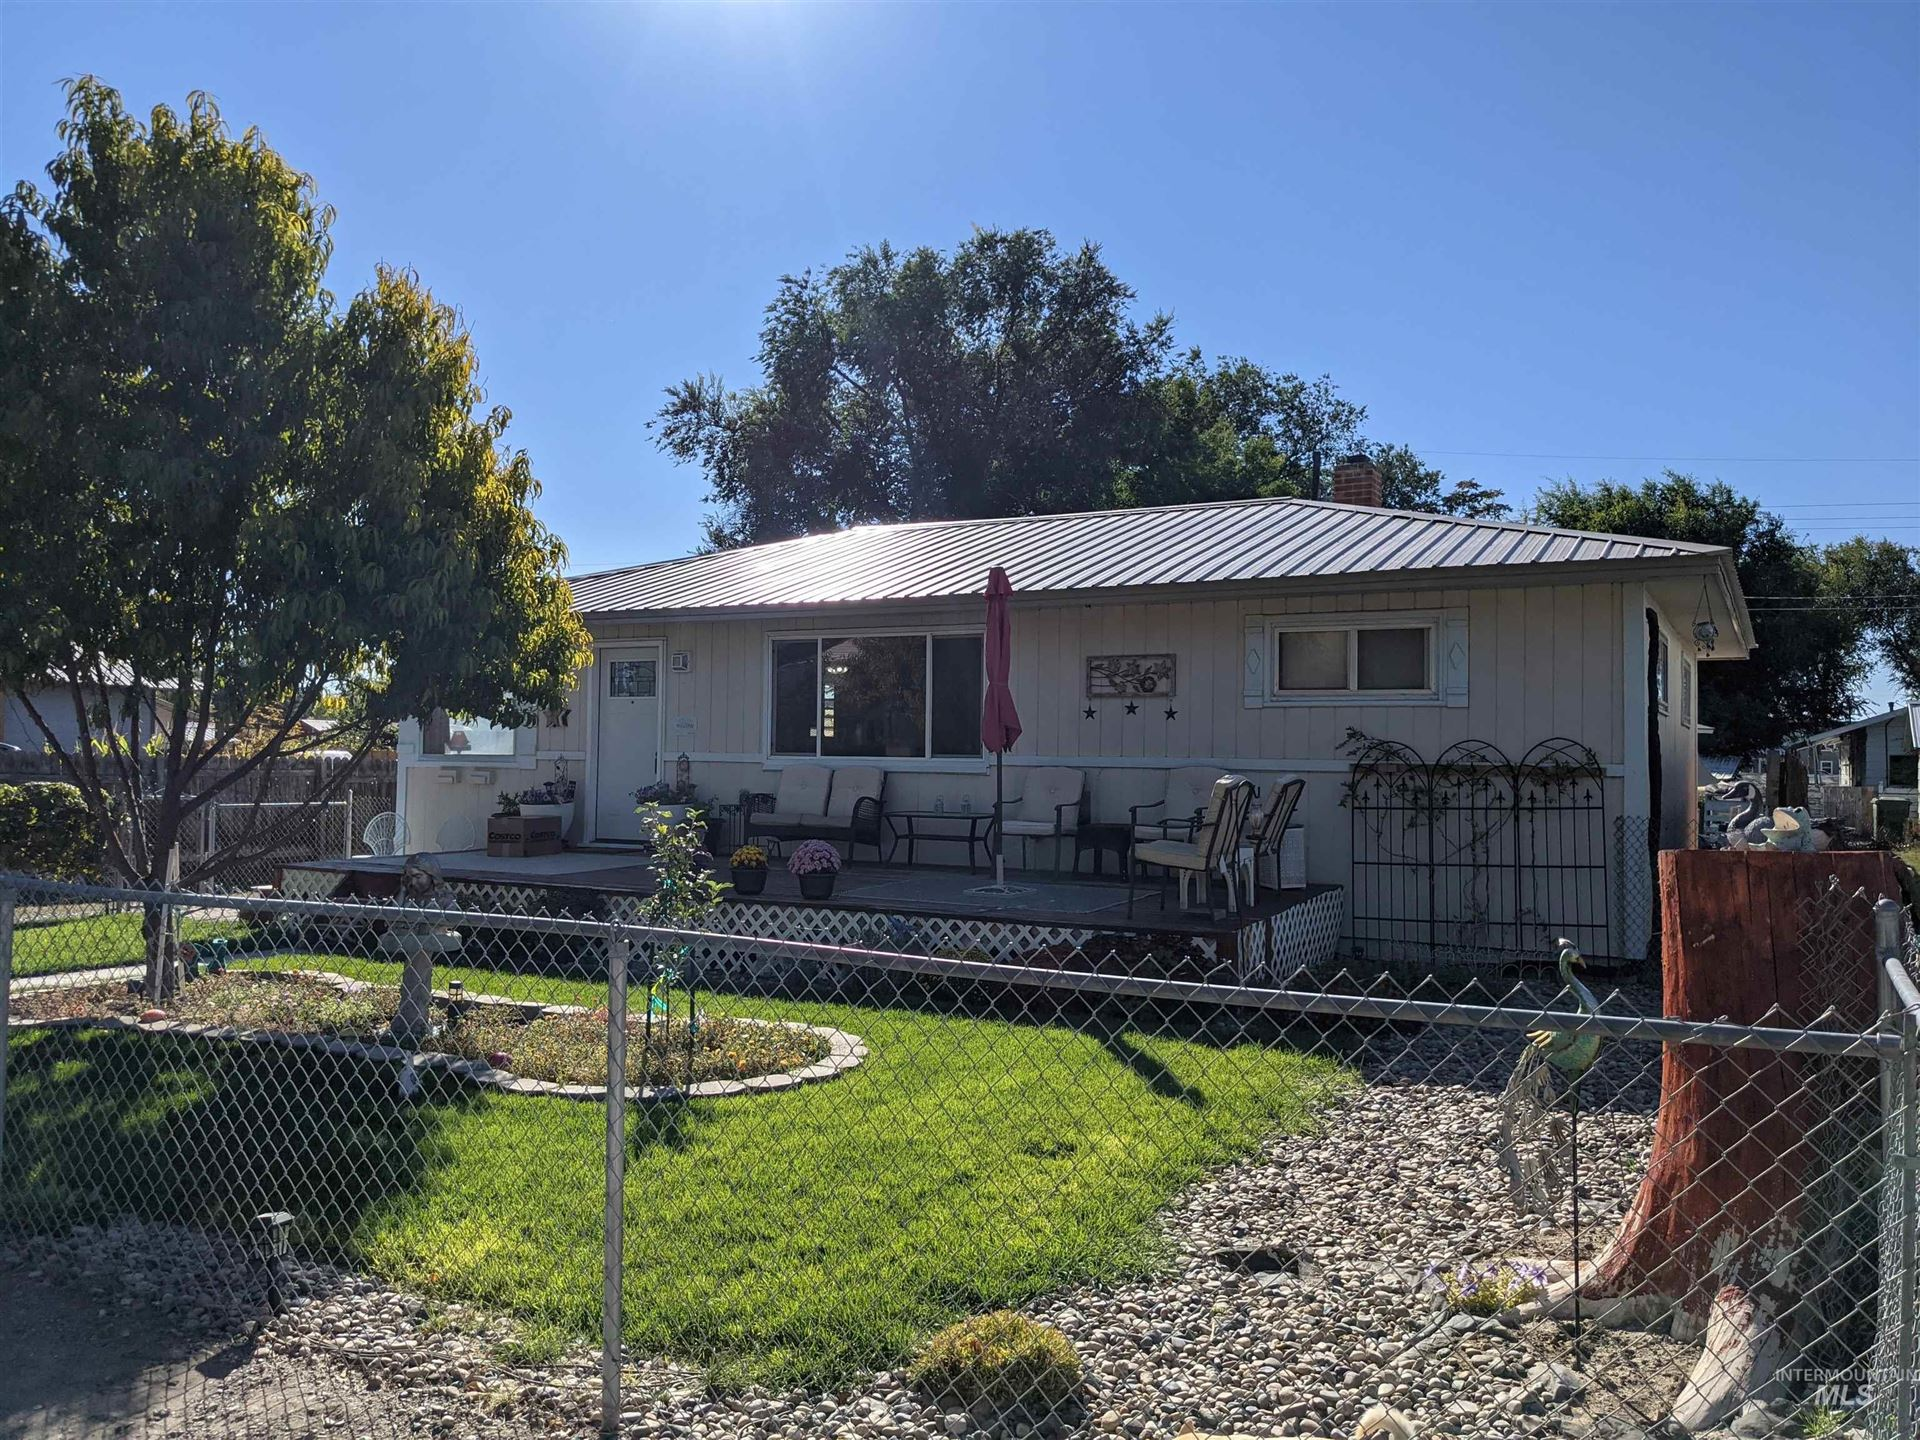 Photo of 631 W Main St, Vale, OR 97918 (MLS # 98818735)